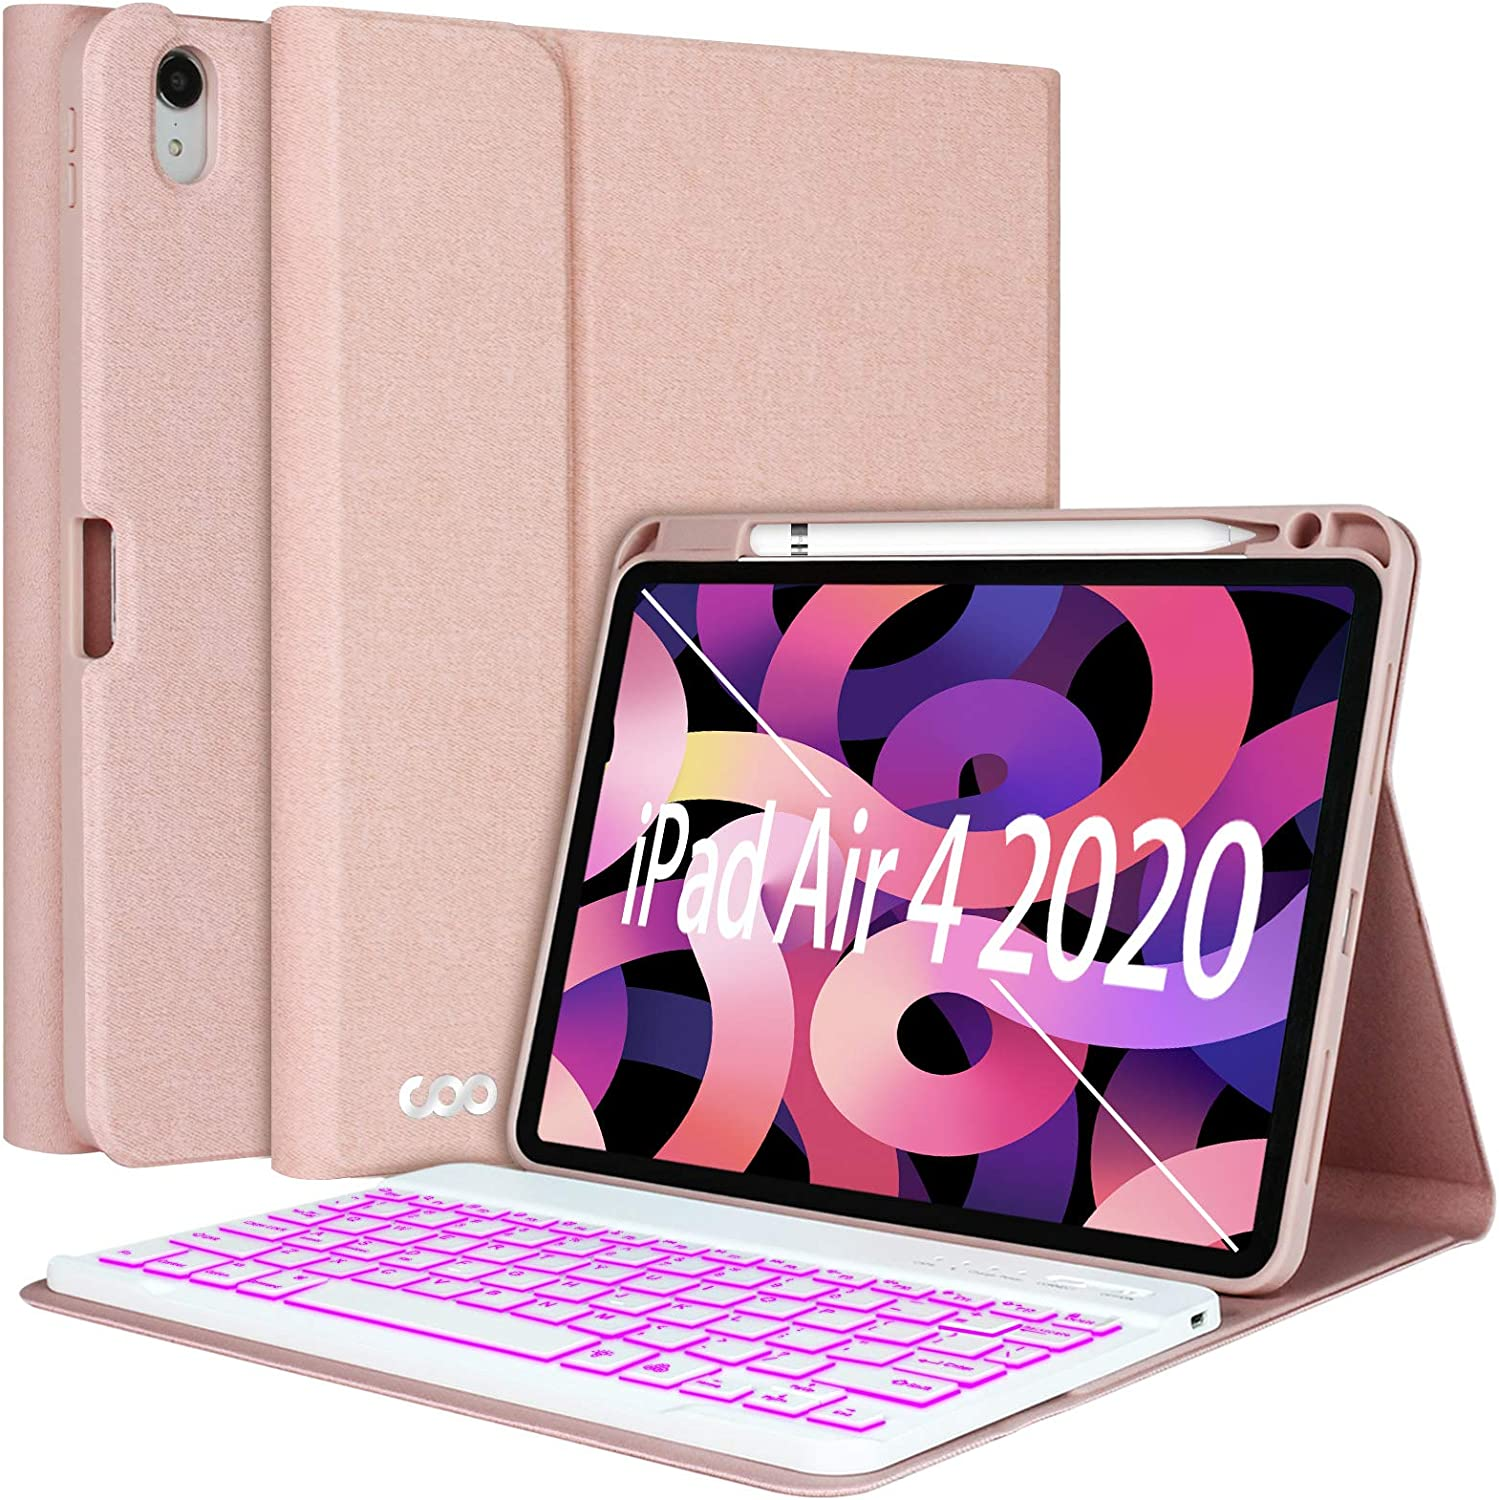 """iPad Air 4th Generation Keyboard Case 10.9"""" 2020, COO Keyboard Case for iPad Air 4th Gen/iPad Pro 11"""" 2018-7 Color Backlit Detachable Wireless Keyboard Protective Cover, Built-in Pencil Holder"""